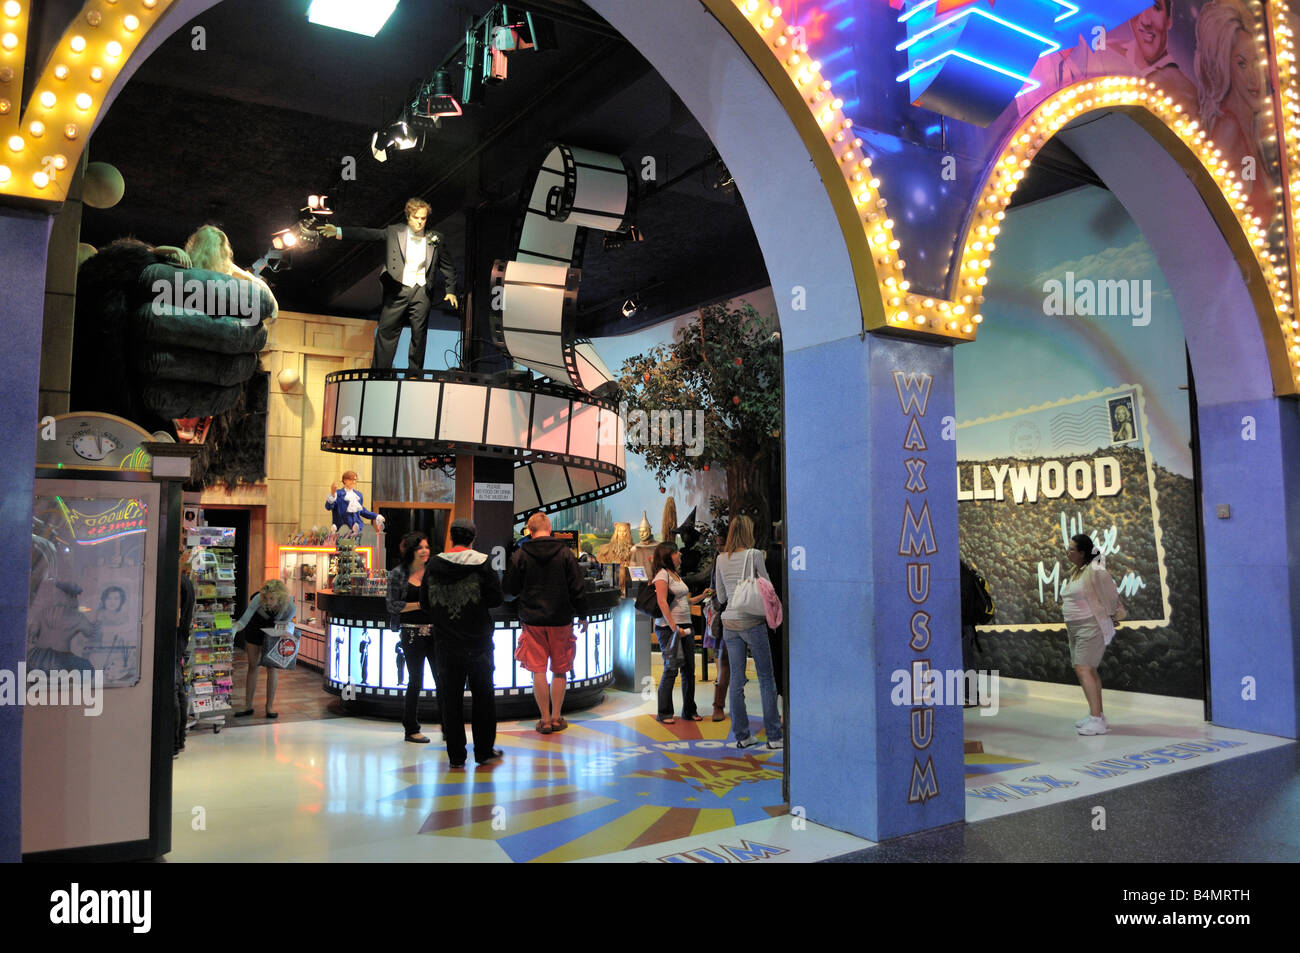 Entrance to the Hollywood Wax Museum - Stock Image